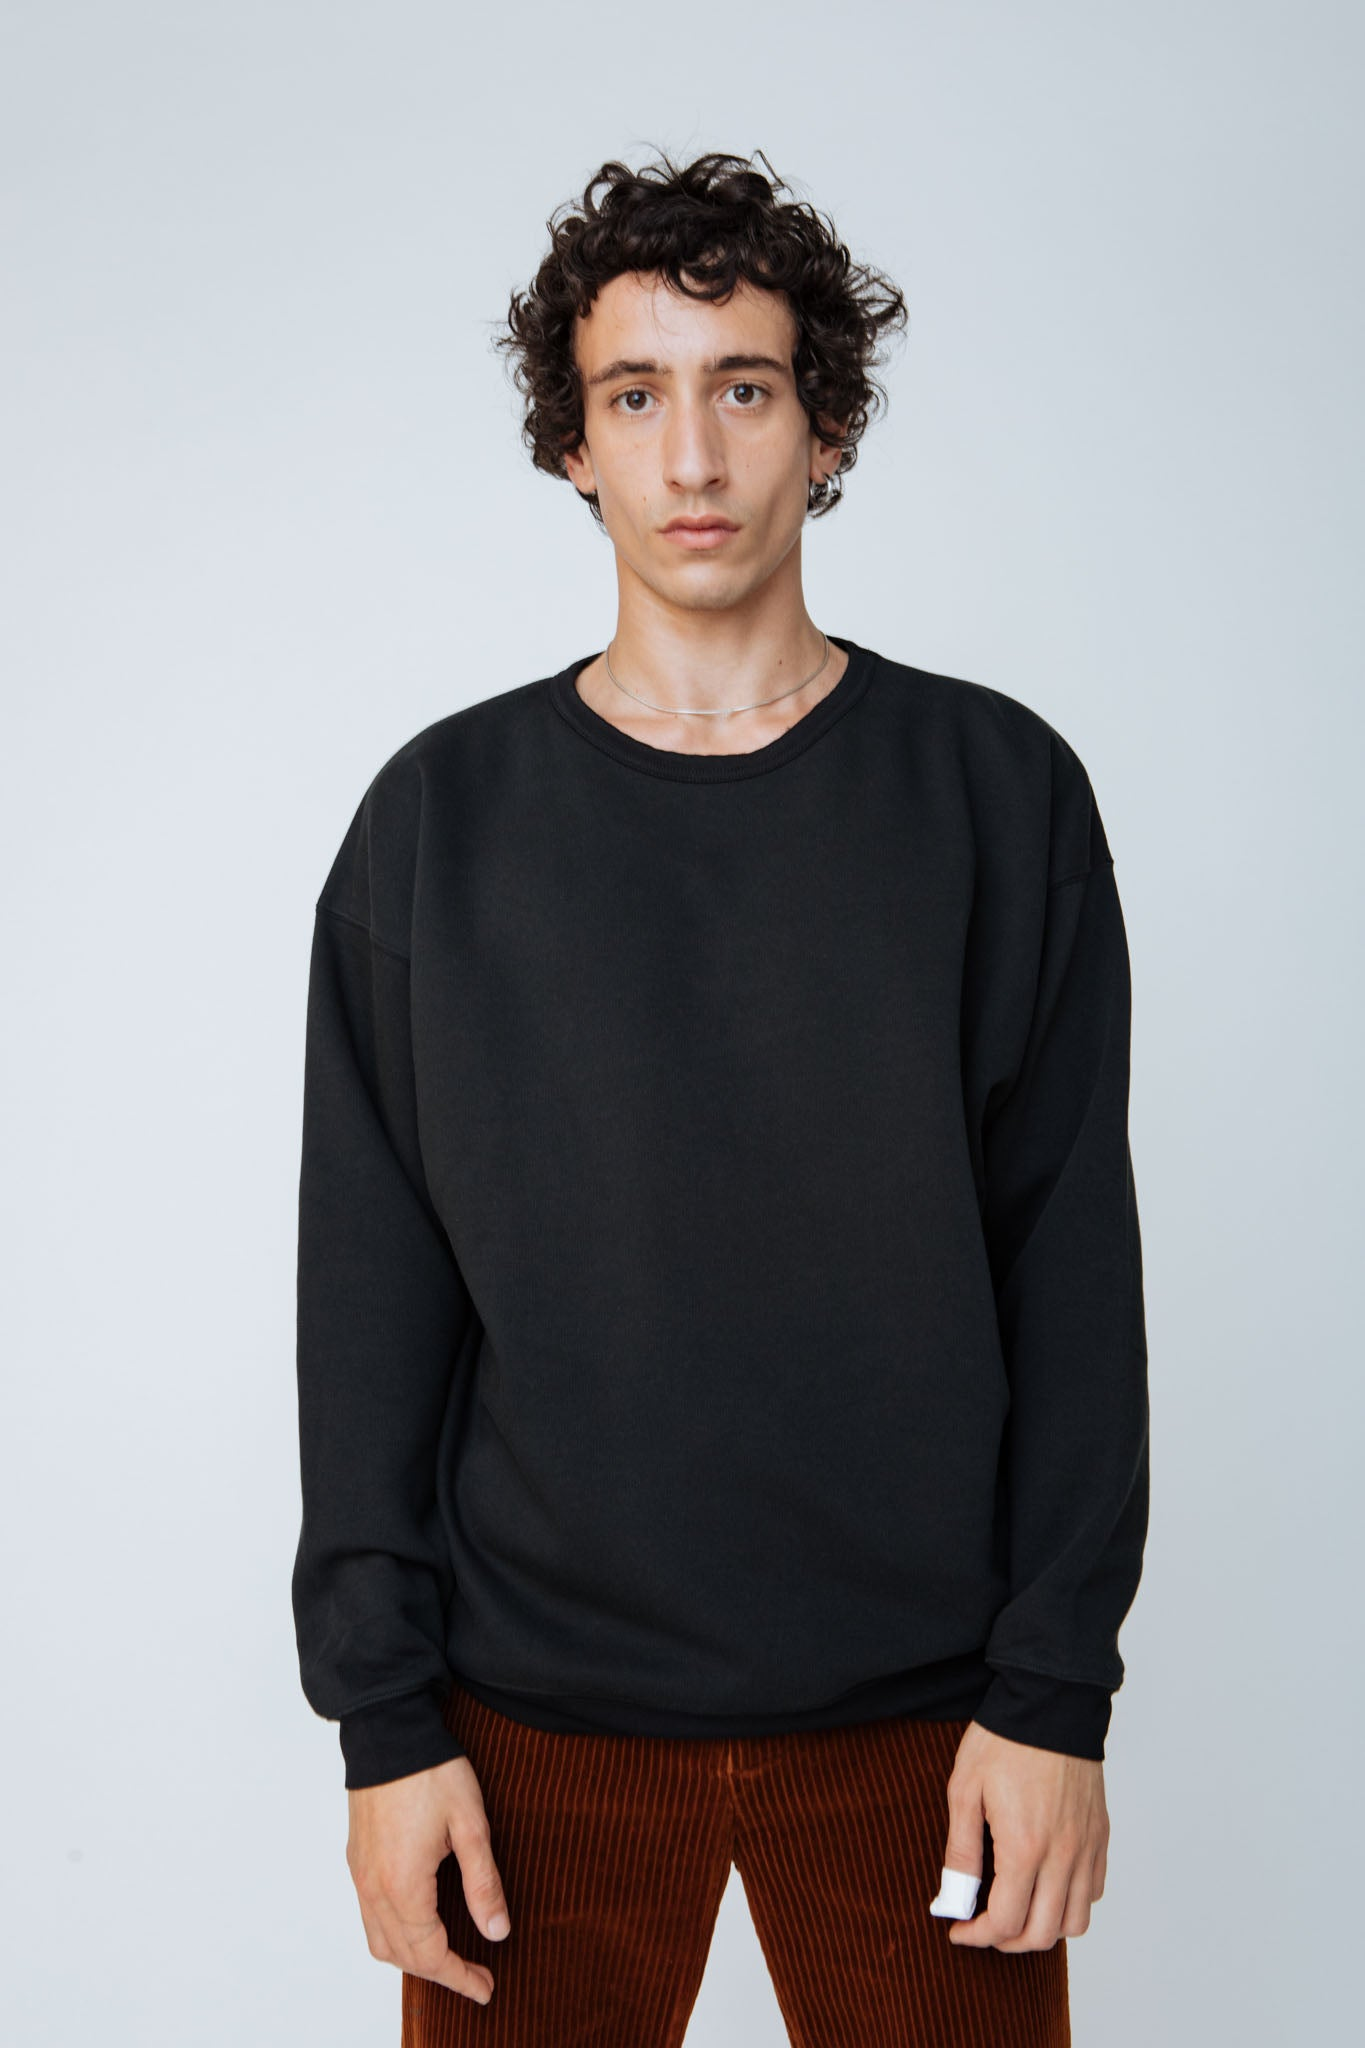 Volf Sweater - Men's